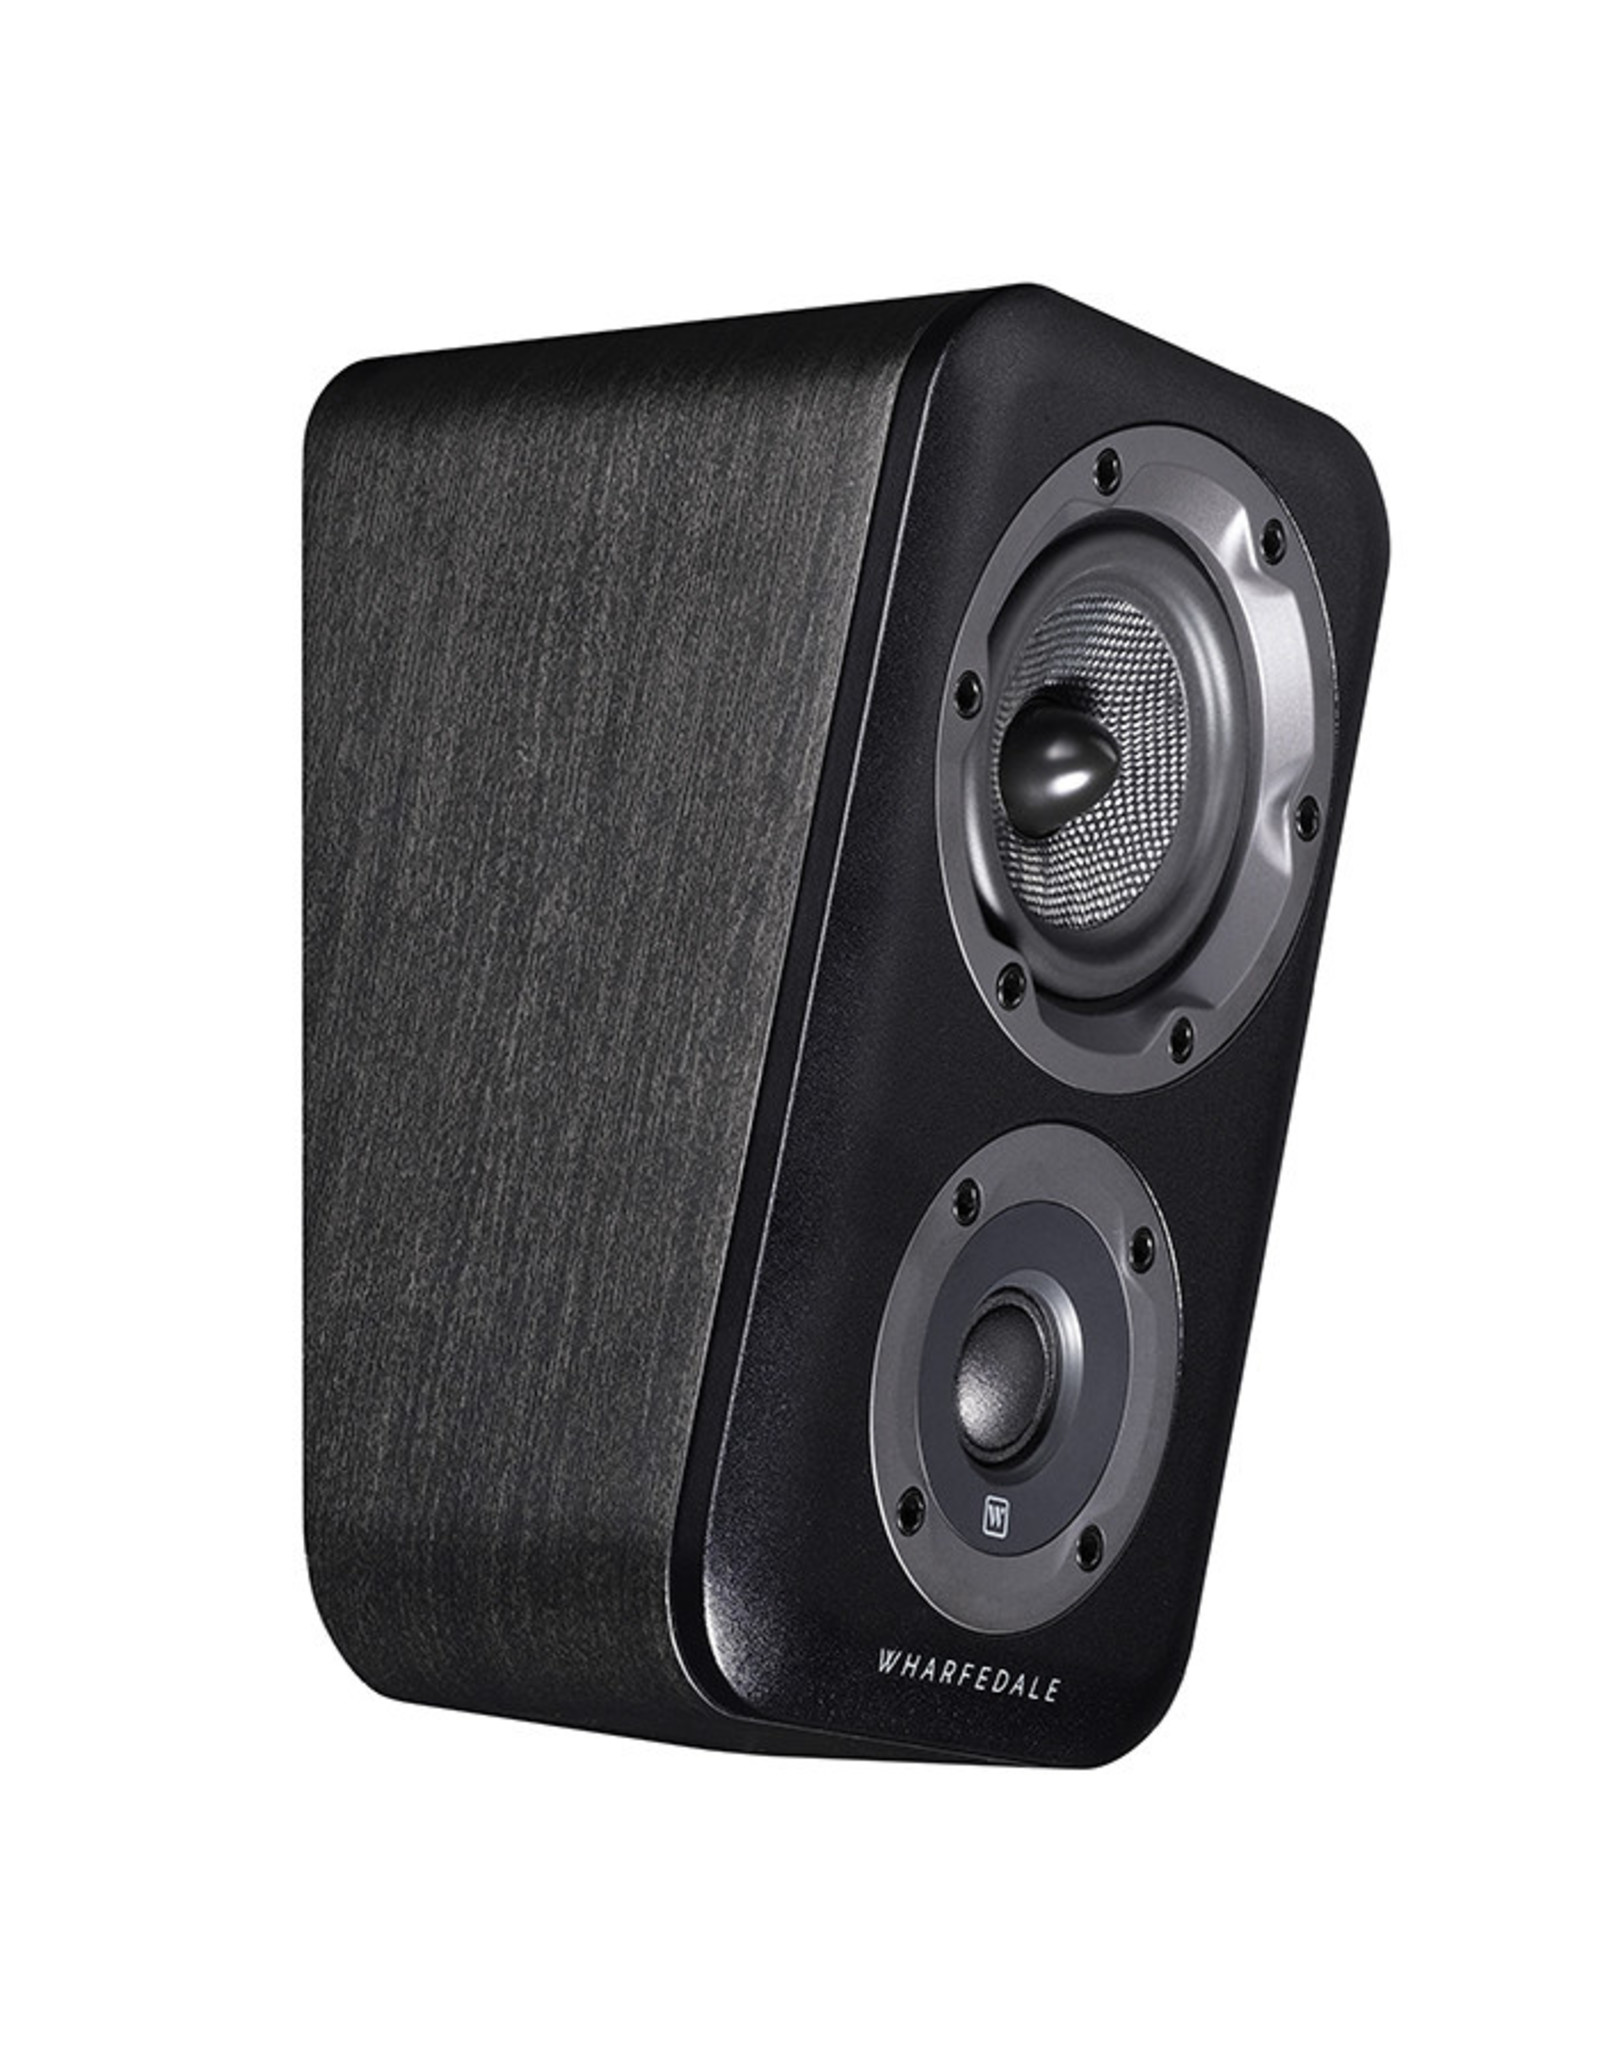 Wharfedale Wharfedale D300 3D Surround Speaker